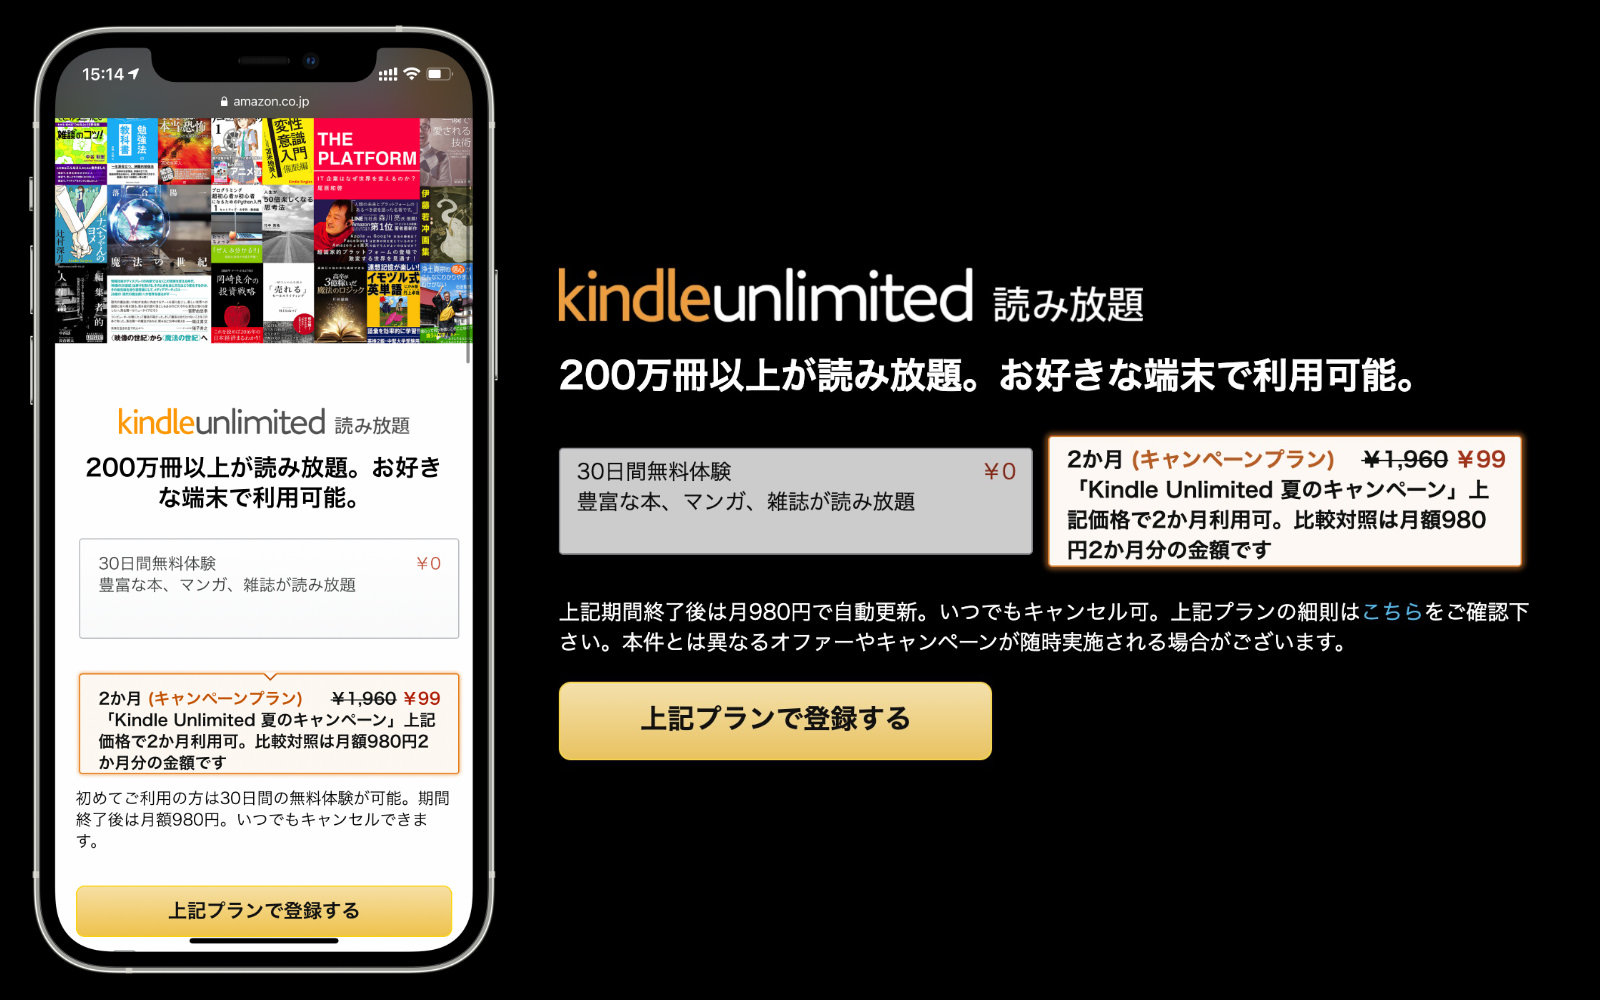 Kindle Unlimited Campaign